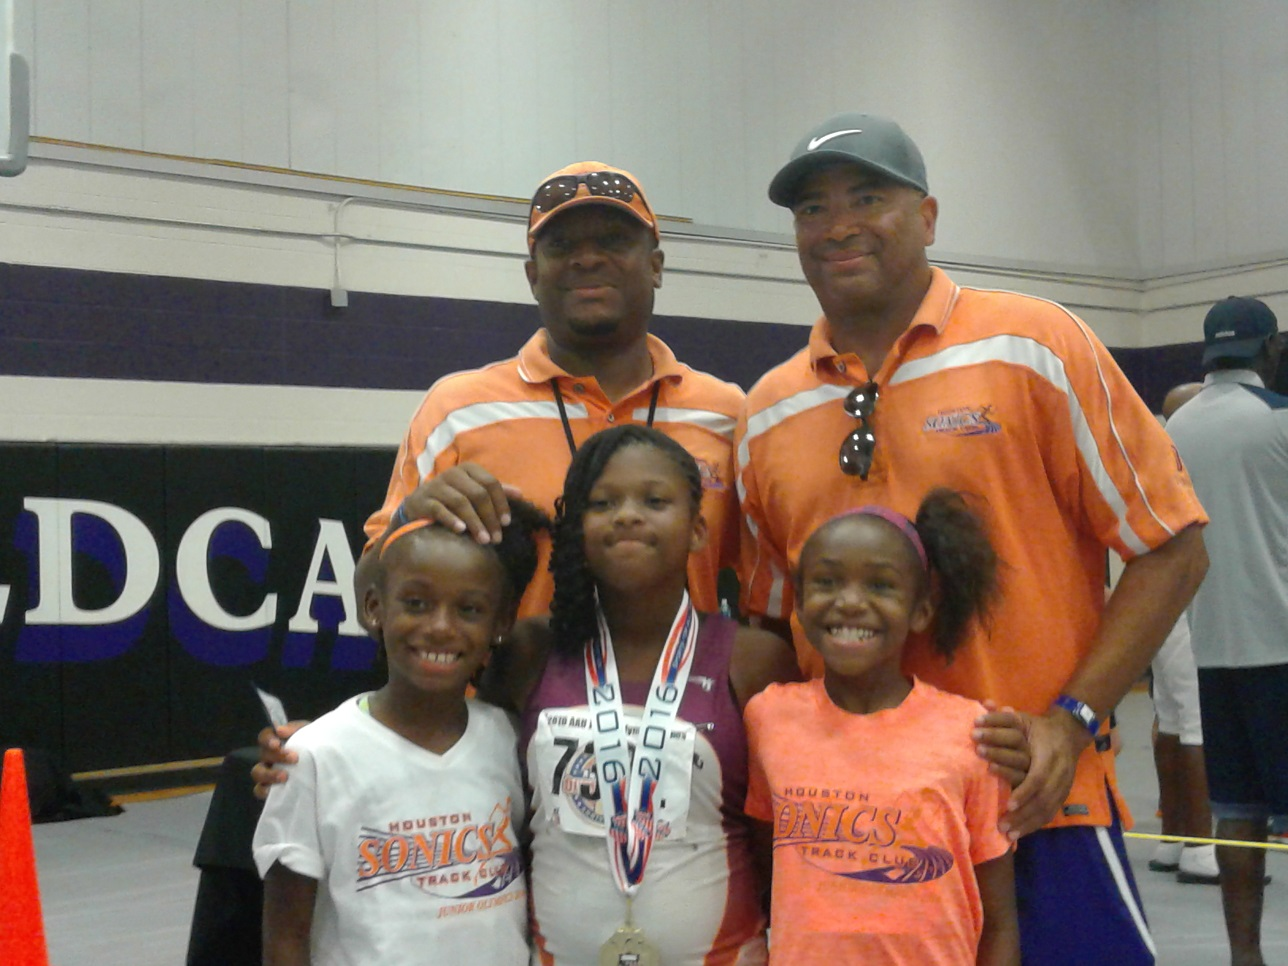 Octavia shot put gold